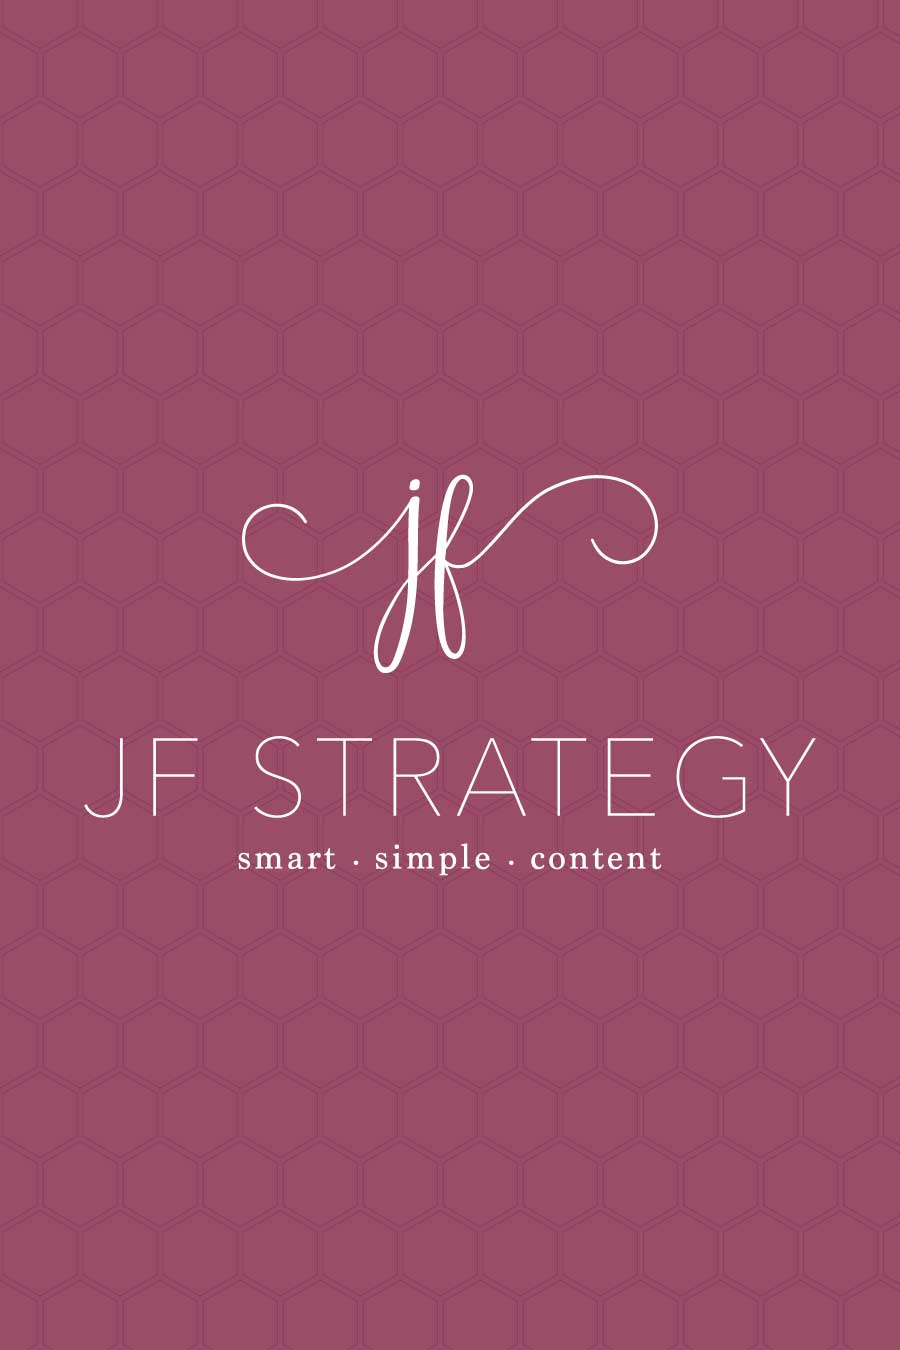 JF Strategy Brand Reveal